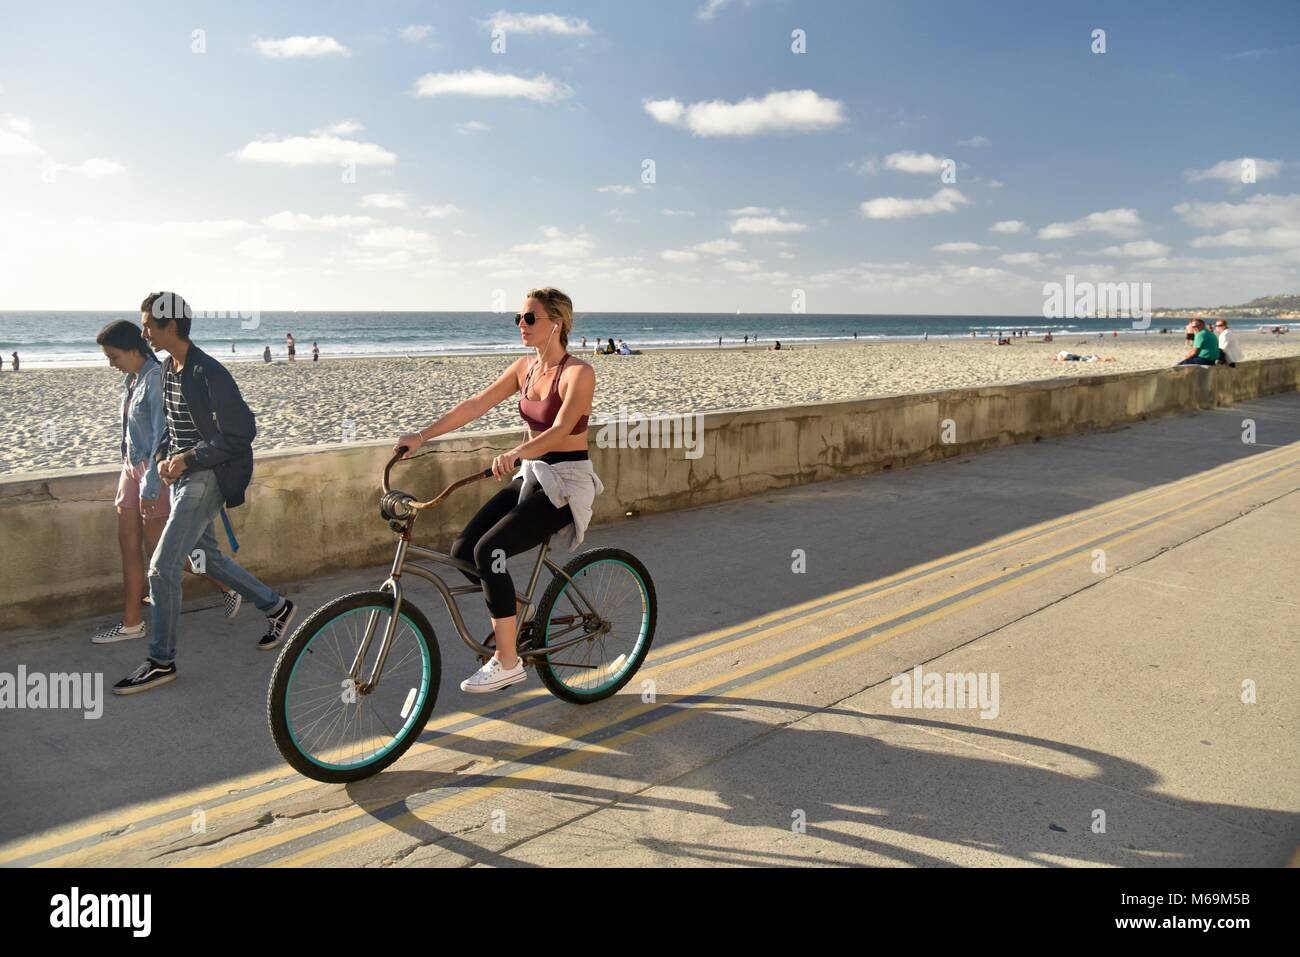 Attractive woman wearing sunglasses, pedaling bicycle along popular beachside paved boardwalk in Mission Beach, Stock Photo